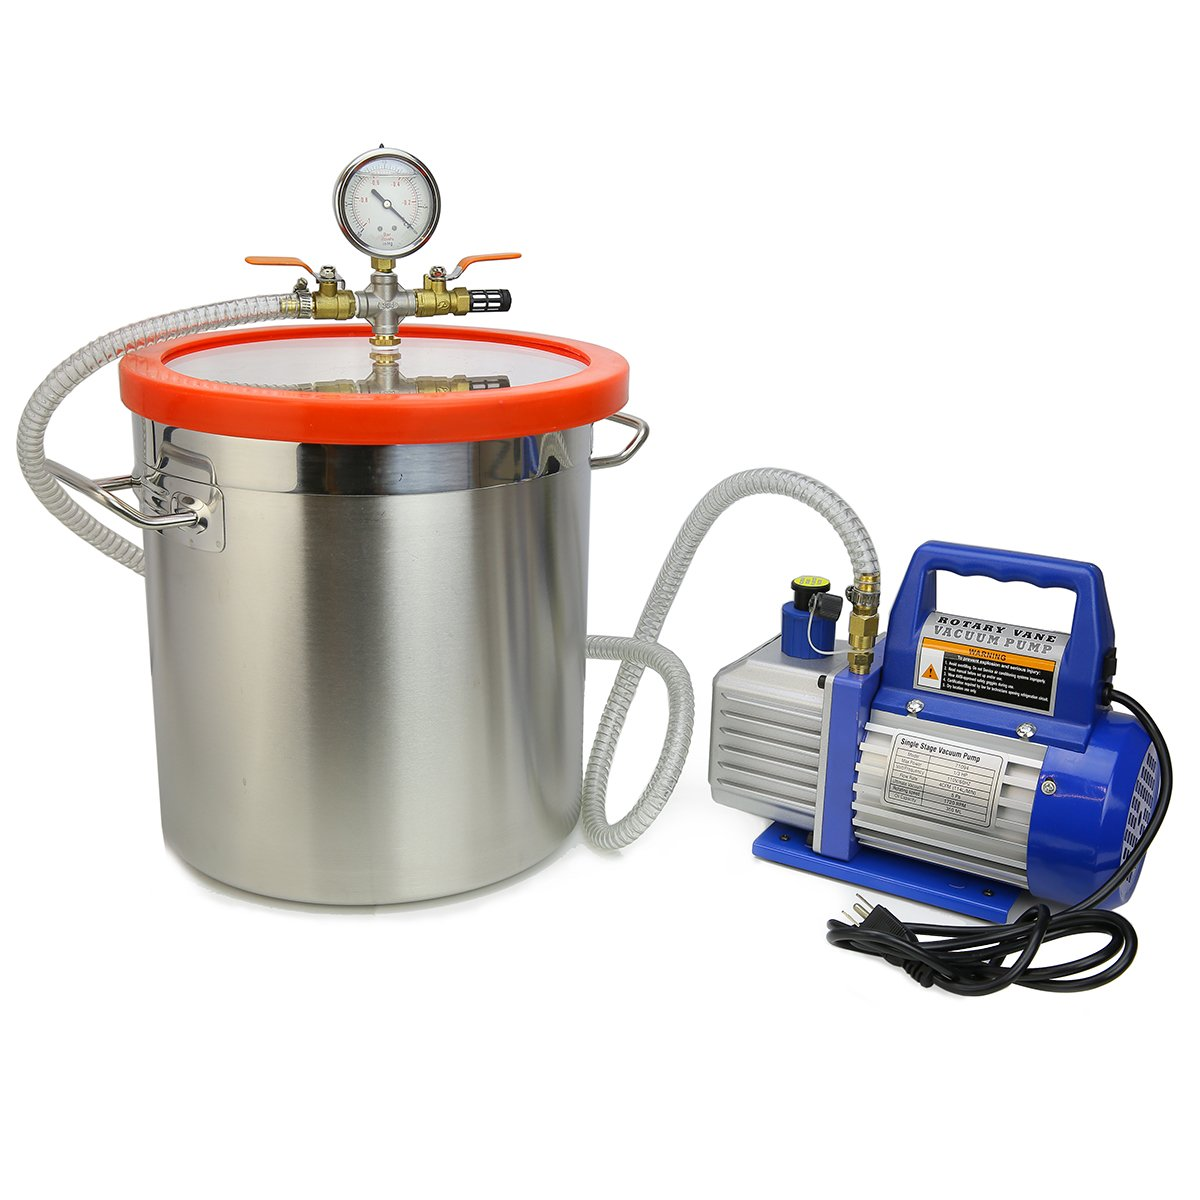 XtremepowerUS 4 CFM Single Stage Vacuum Pump 5 Gallons Chamber Kit Degass Urethanes, Silicones and Epoxies